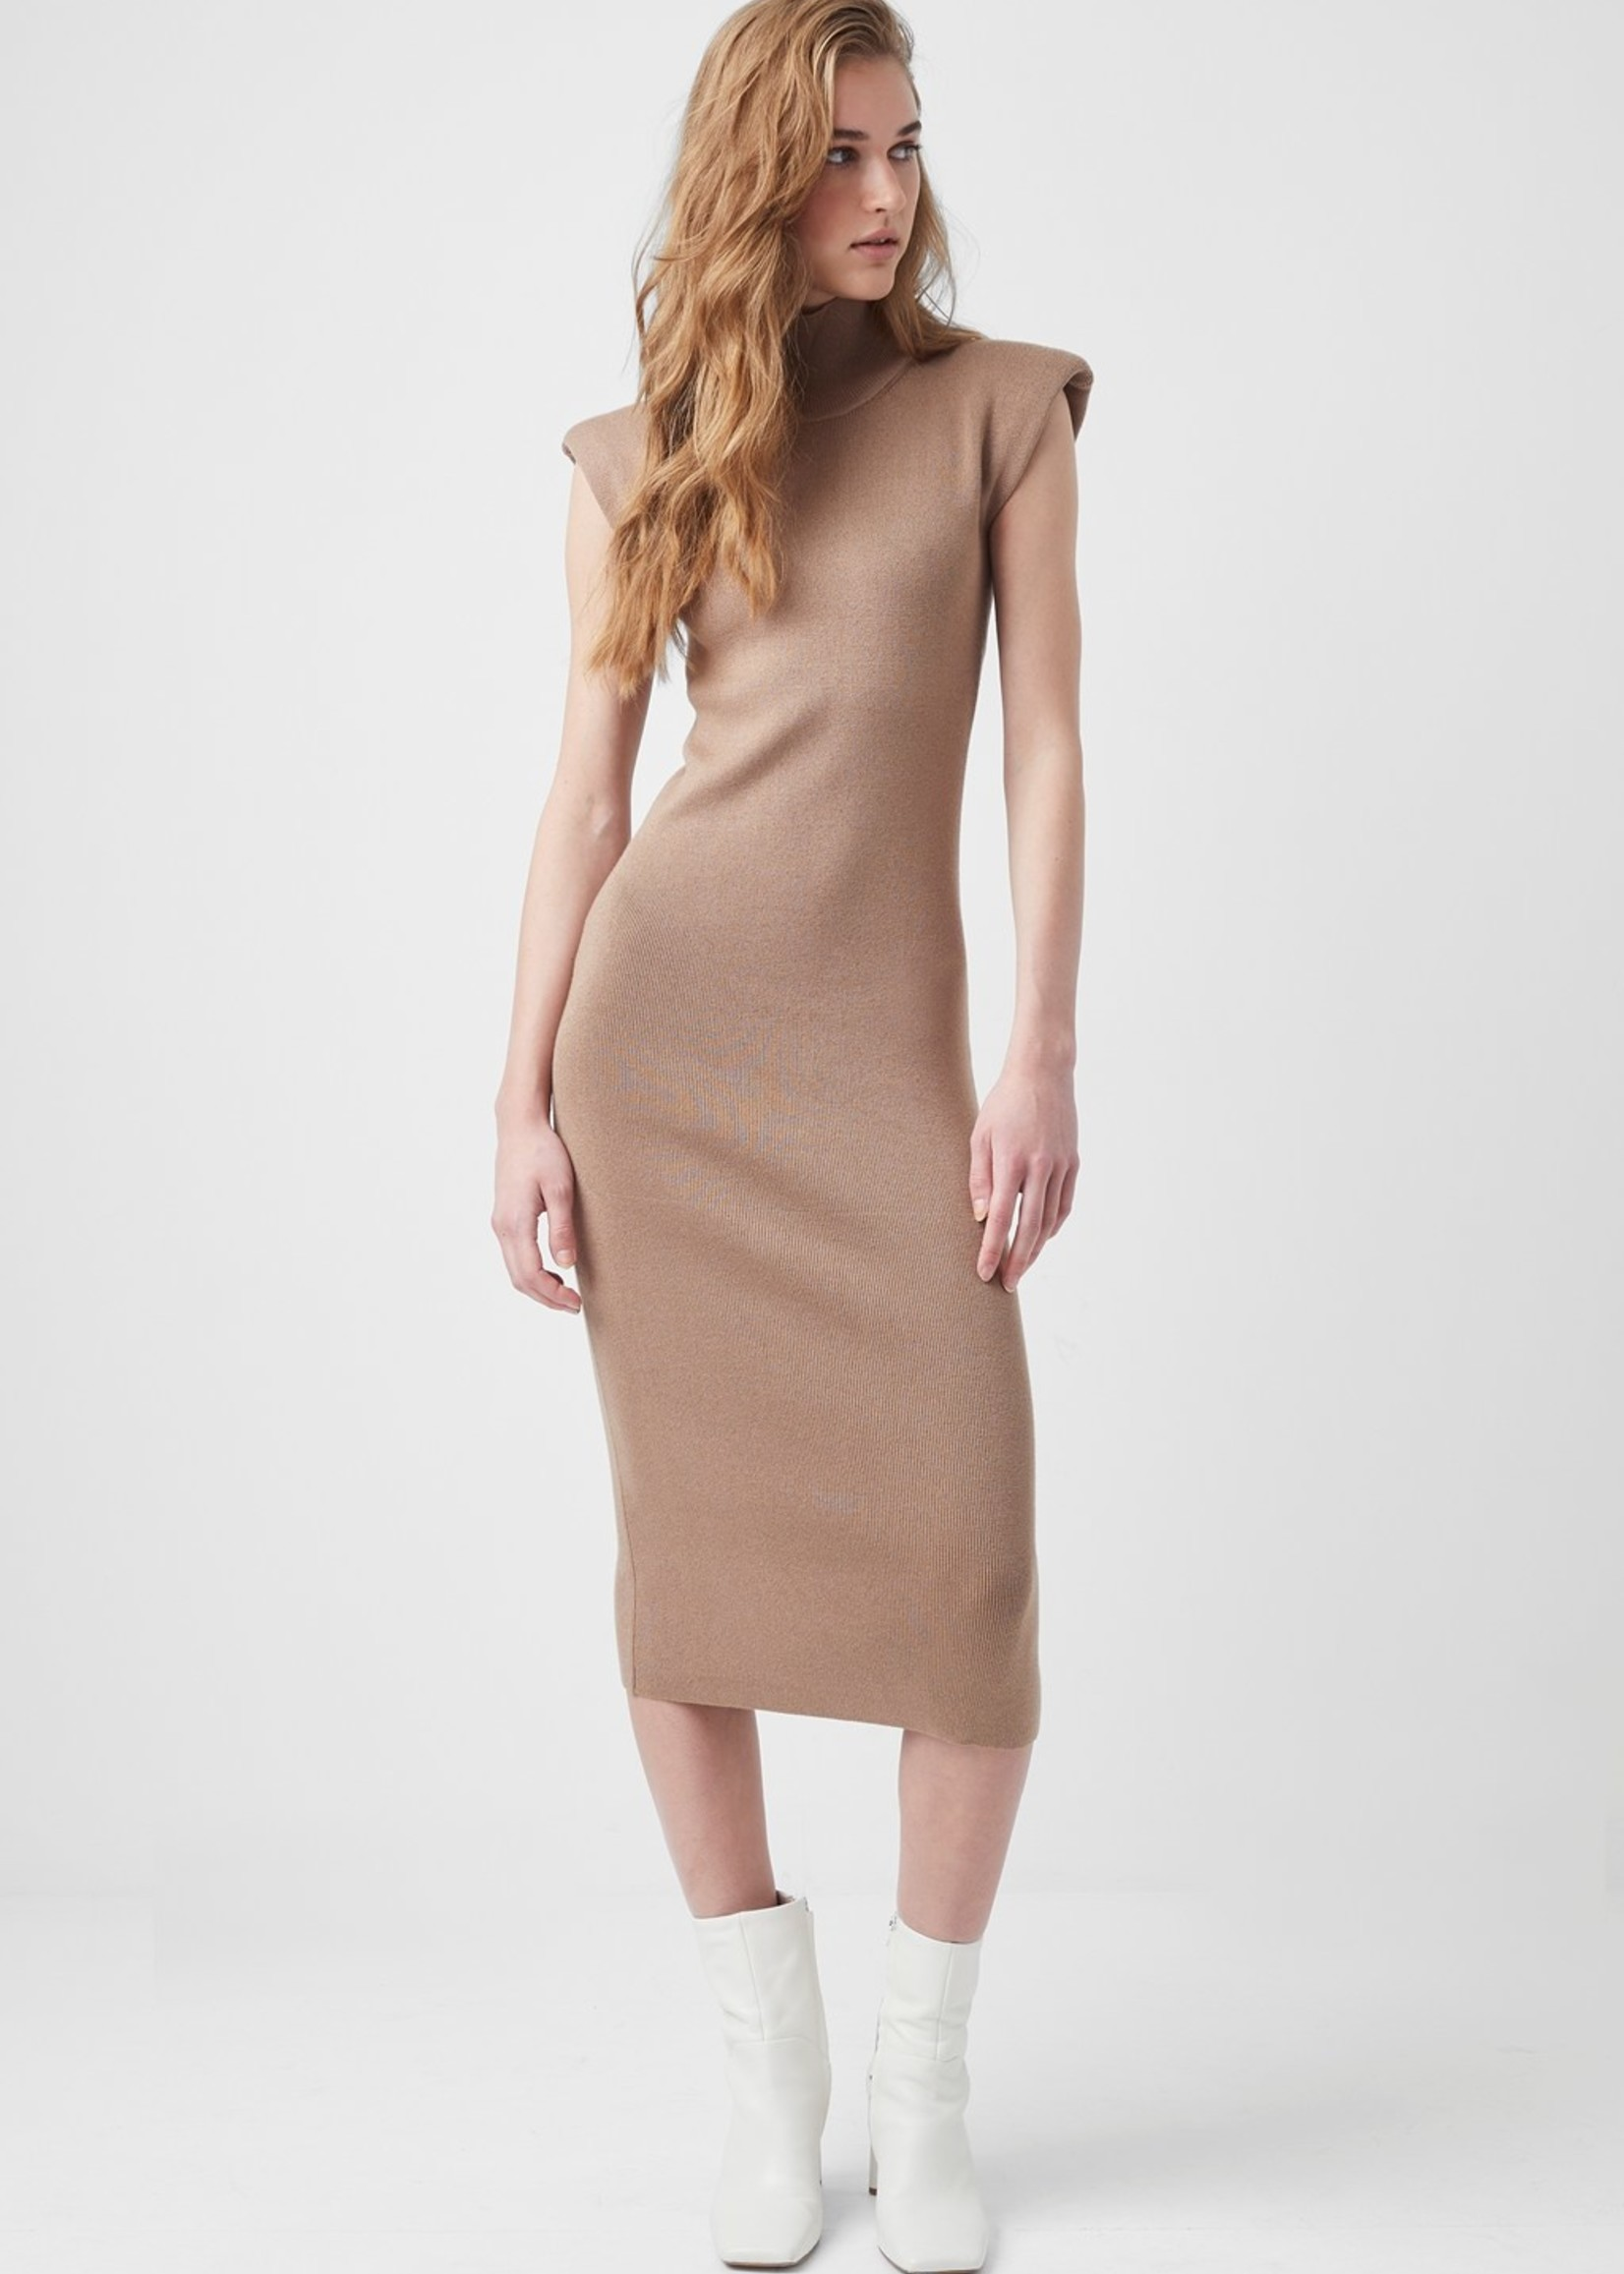 French Connection Camel Shoulder Pad Midi Dress